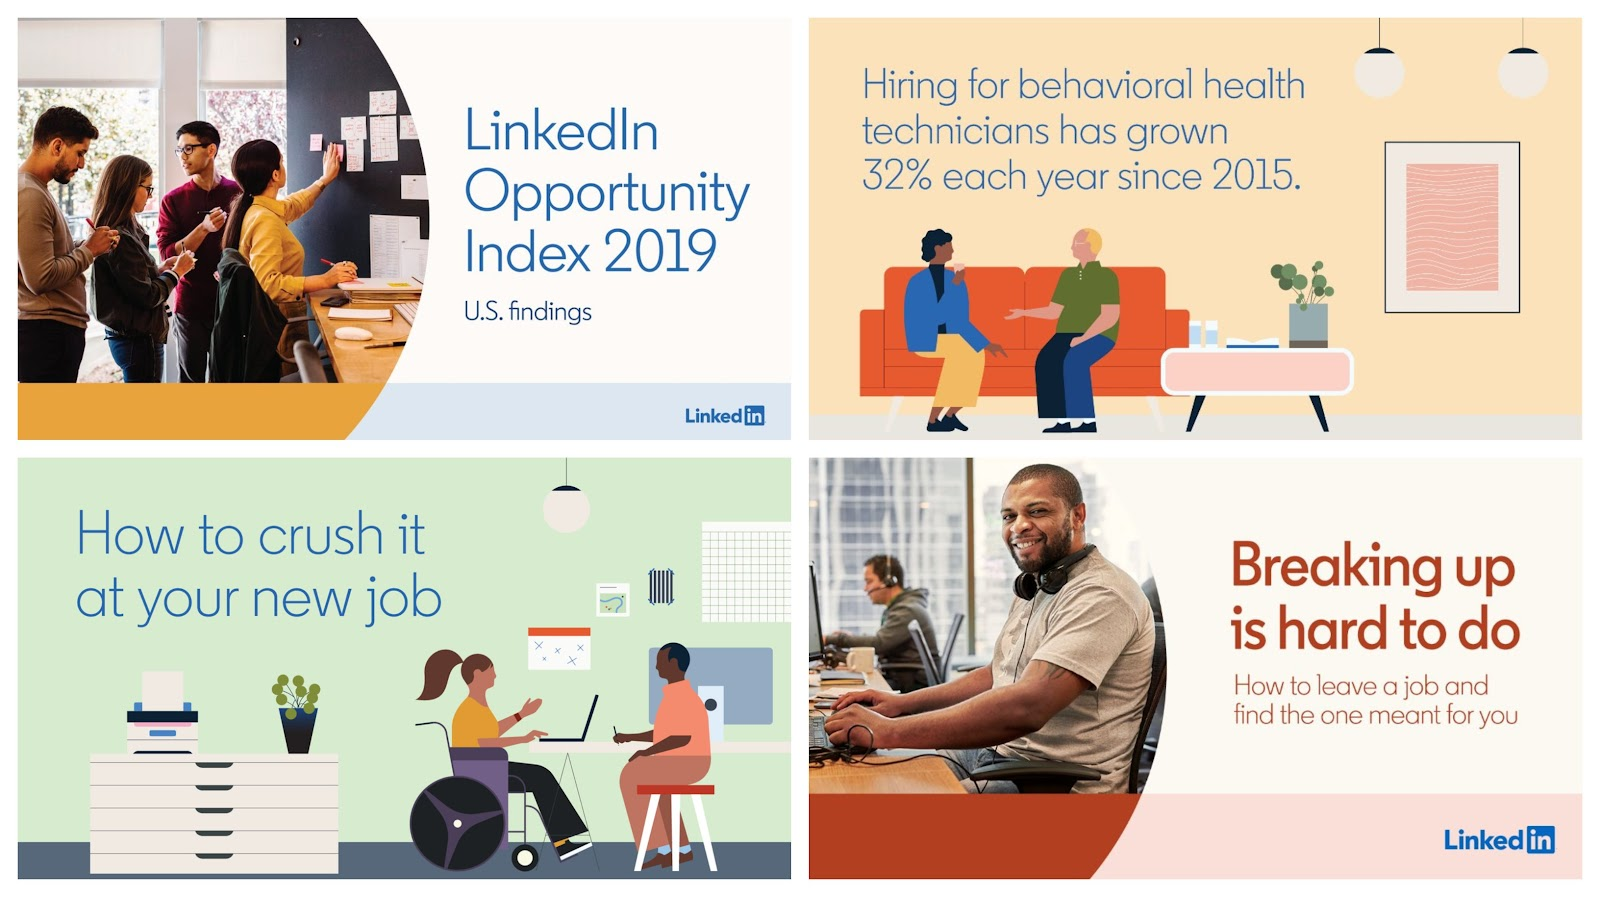 Graphic Design for Instagram tip - use muted color palettes over bold type. example - linkedin ads